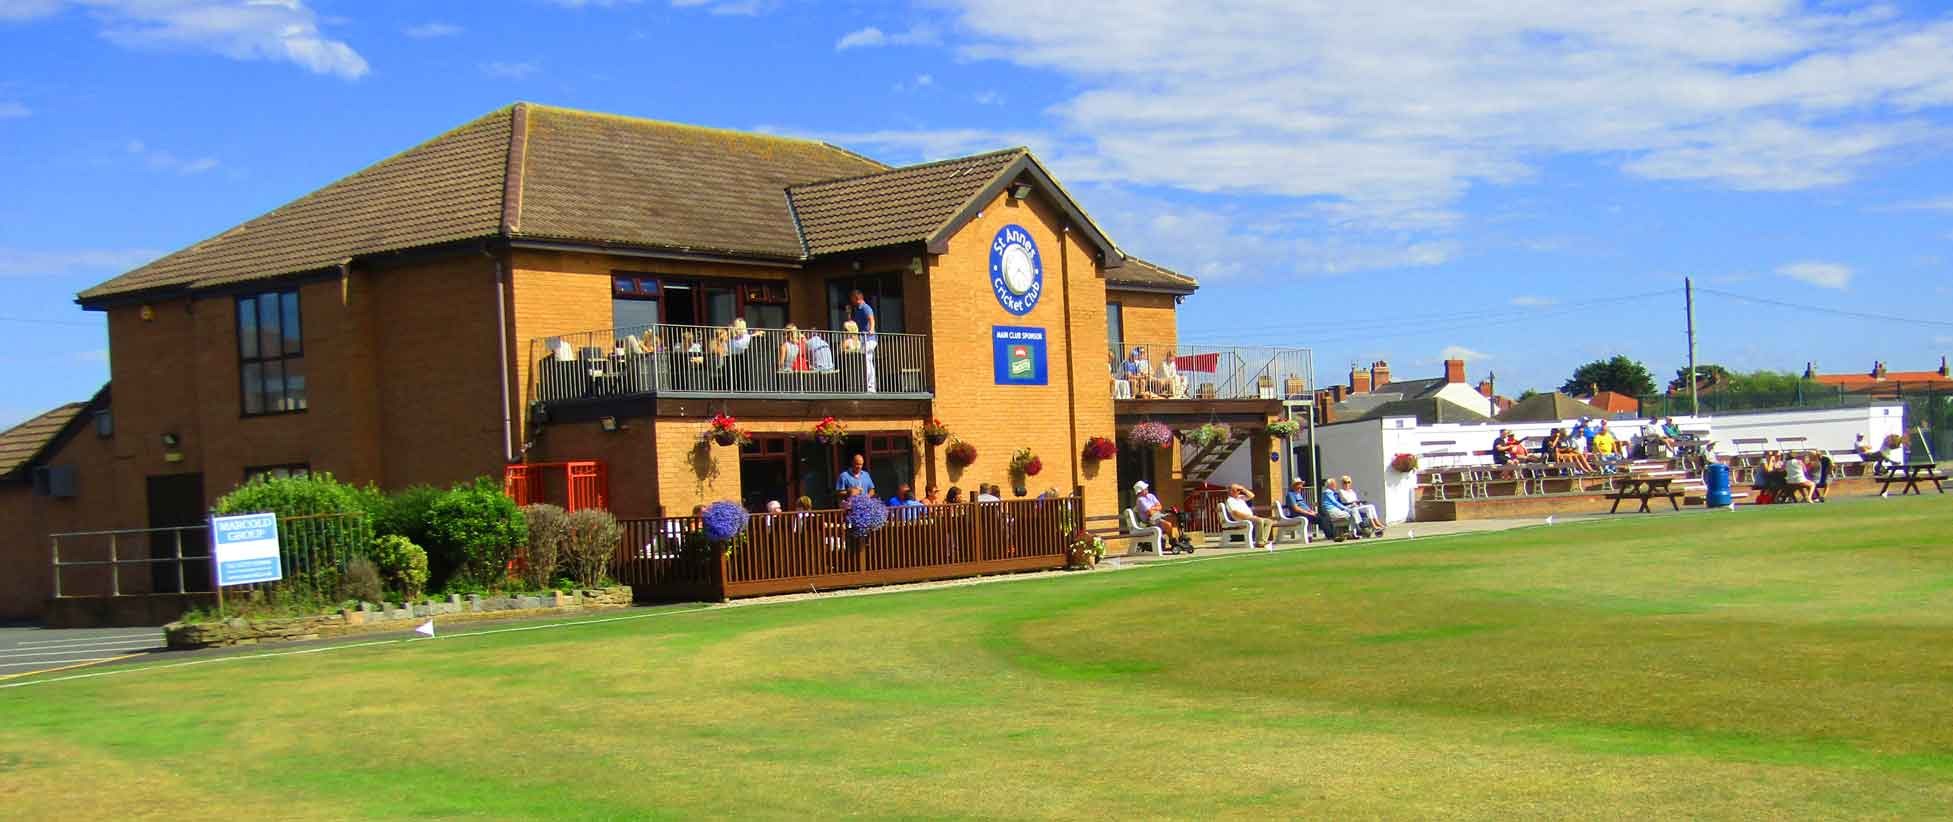 Award winning St Annes Cricket Club